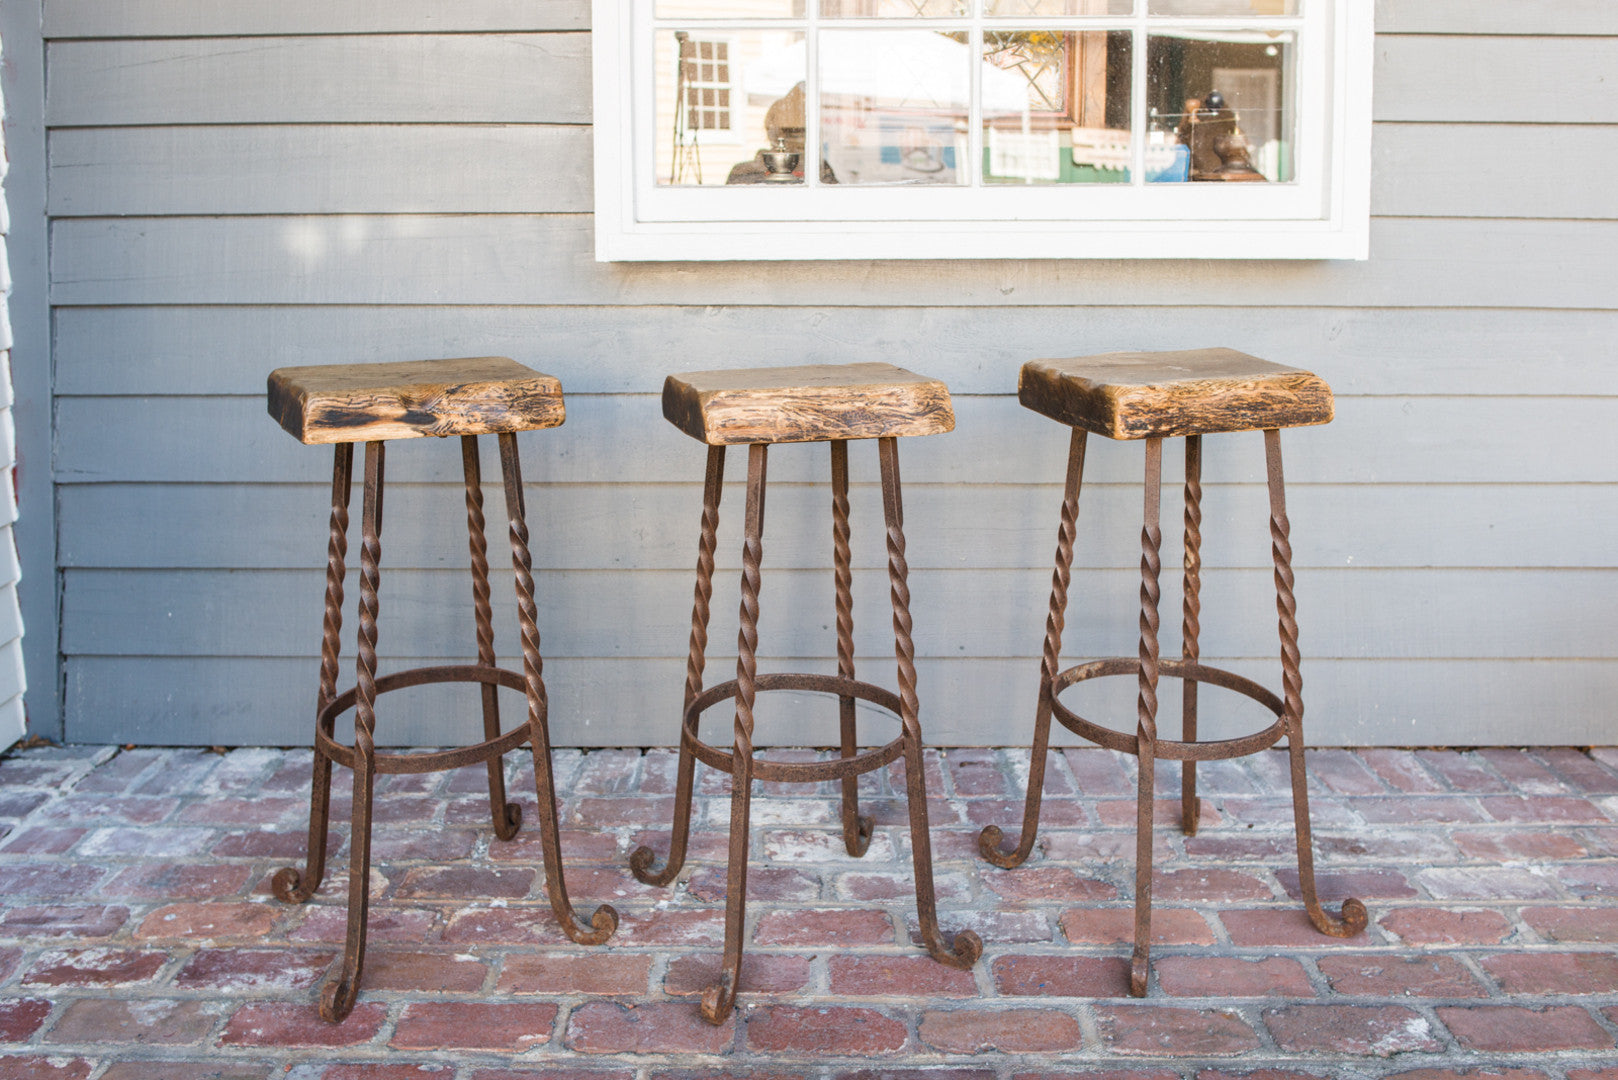 Salvage and Reclaimed Wood Bar StoolsSet of 3